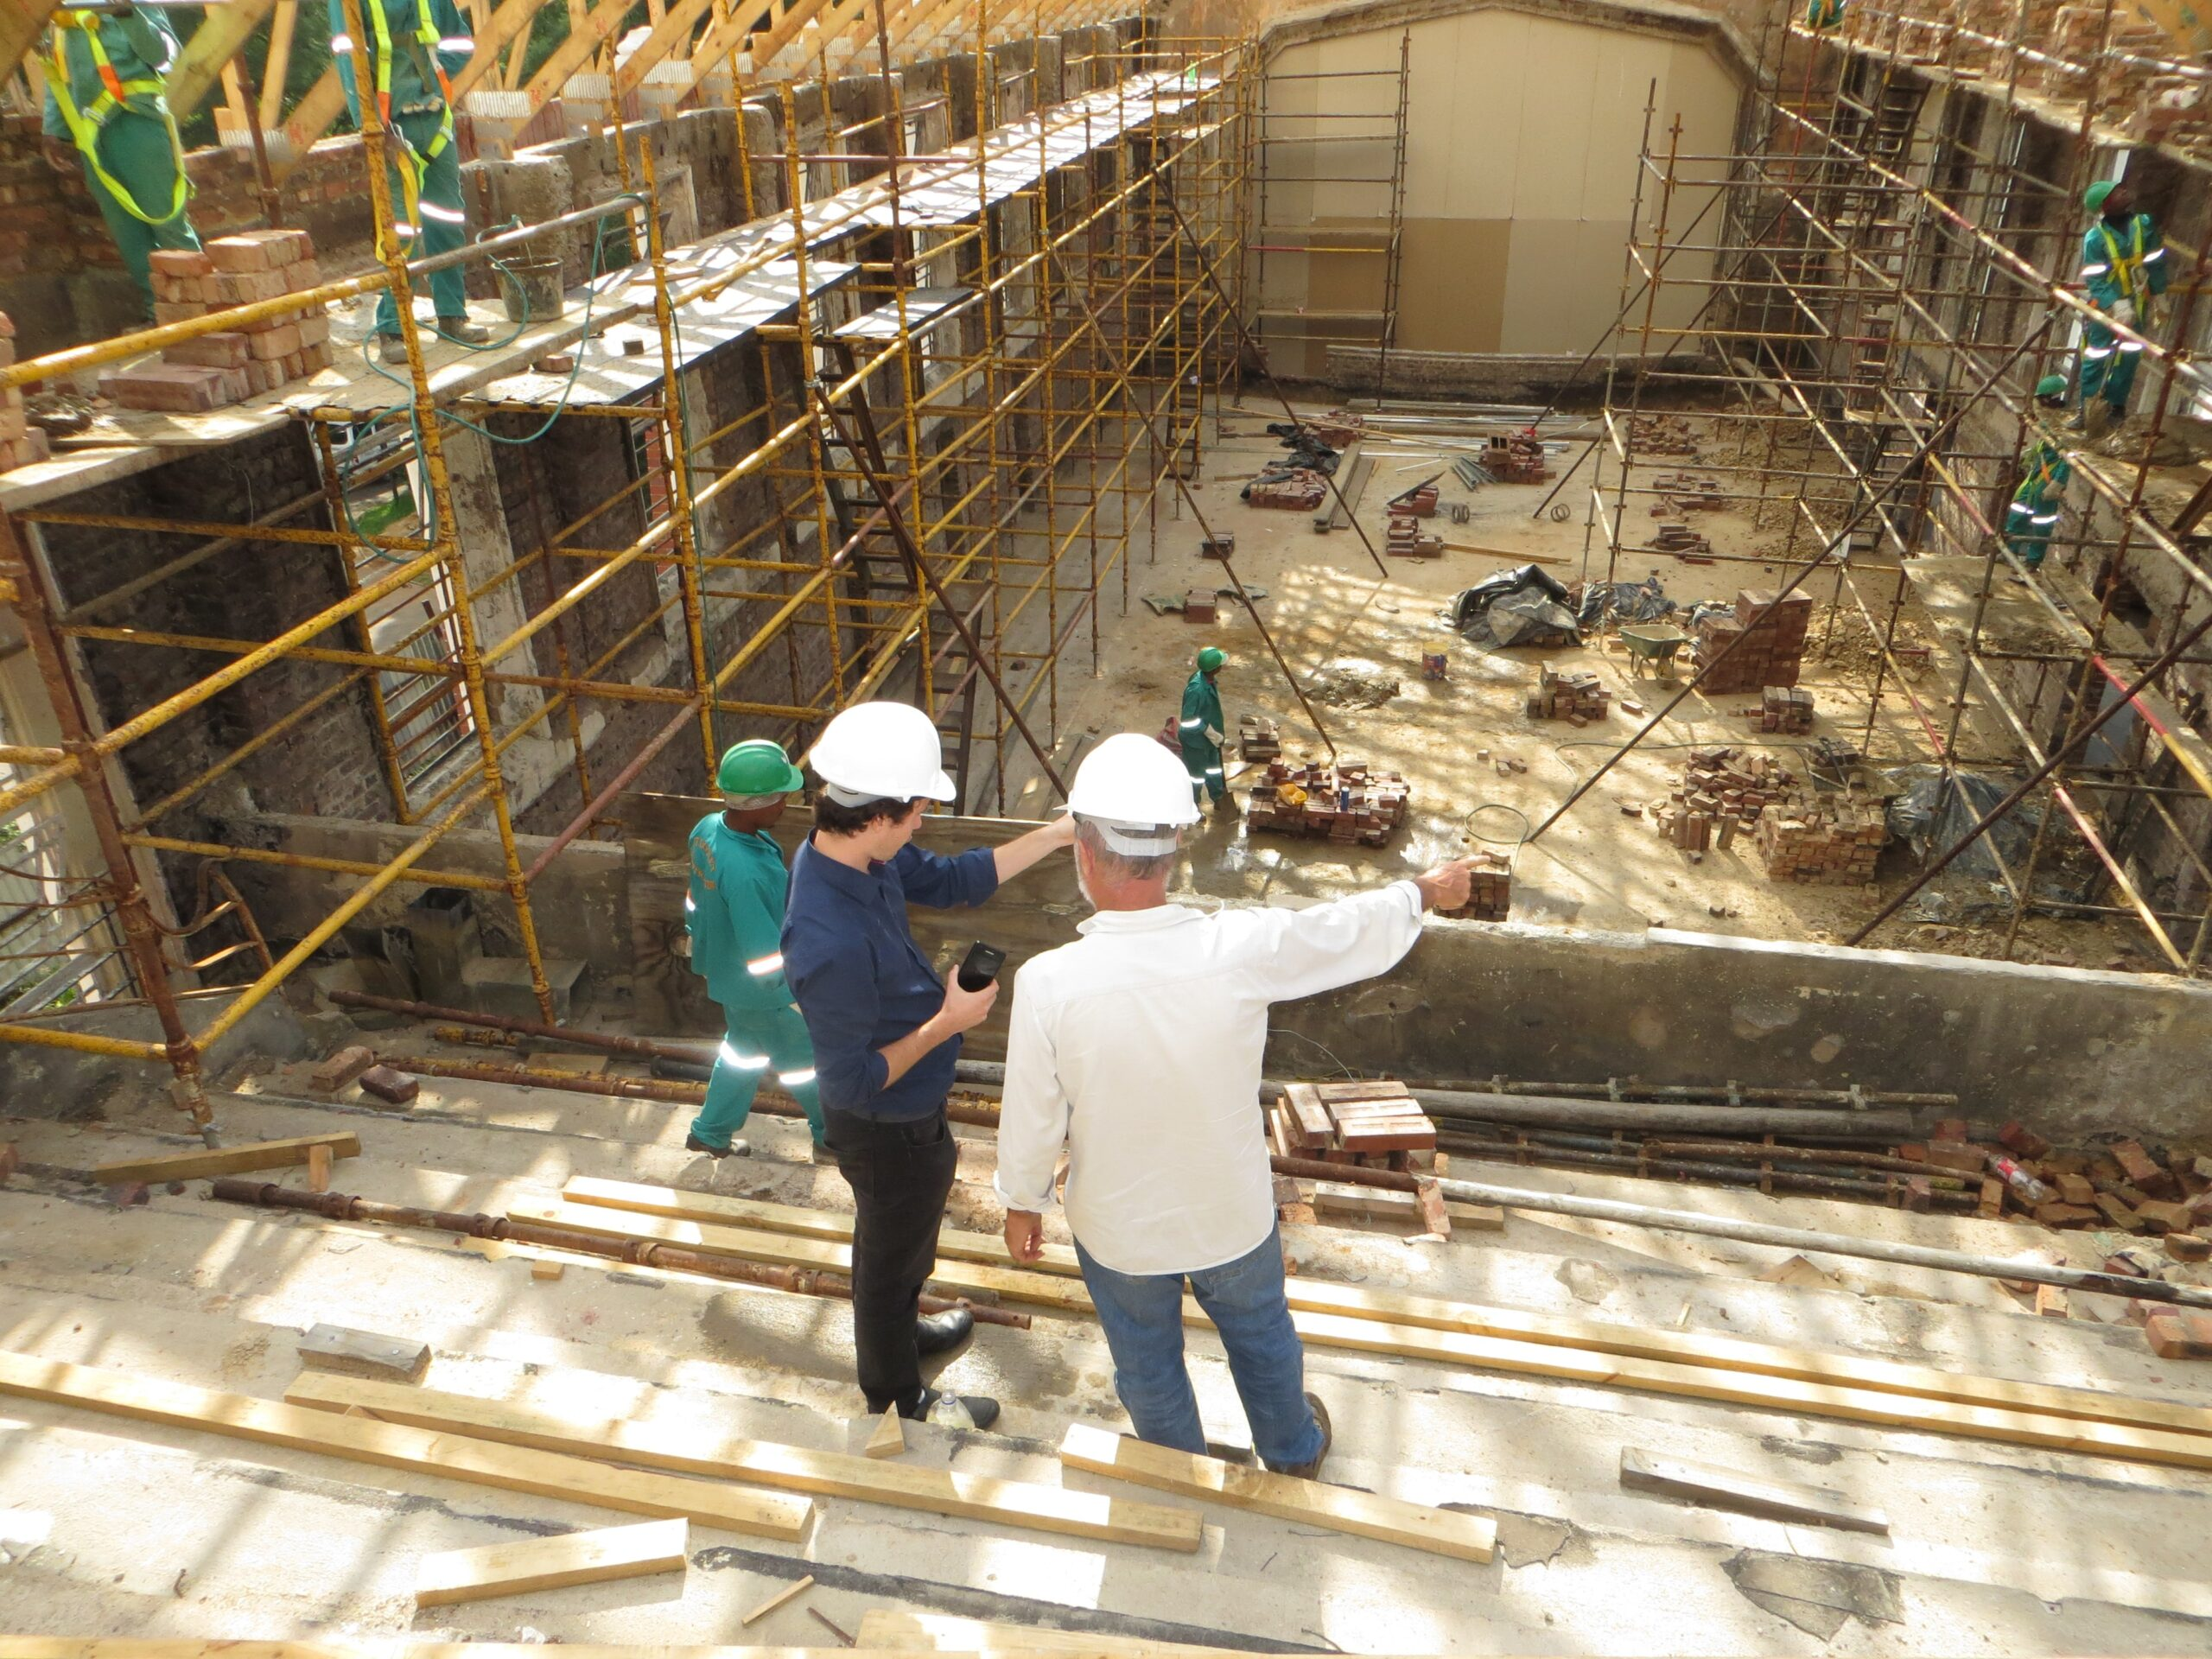 SR&ED, construction site with two men talking